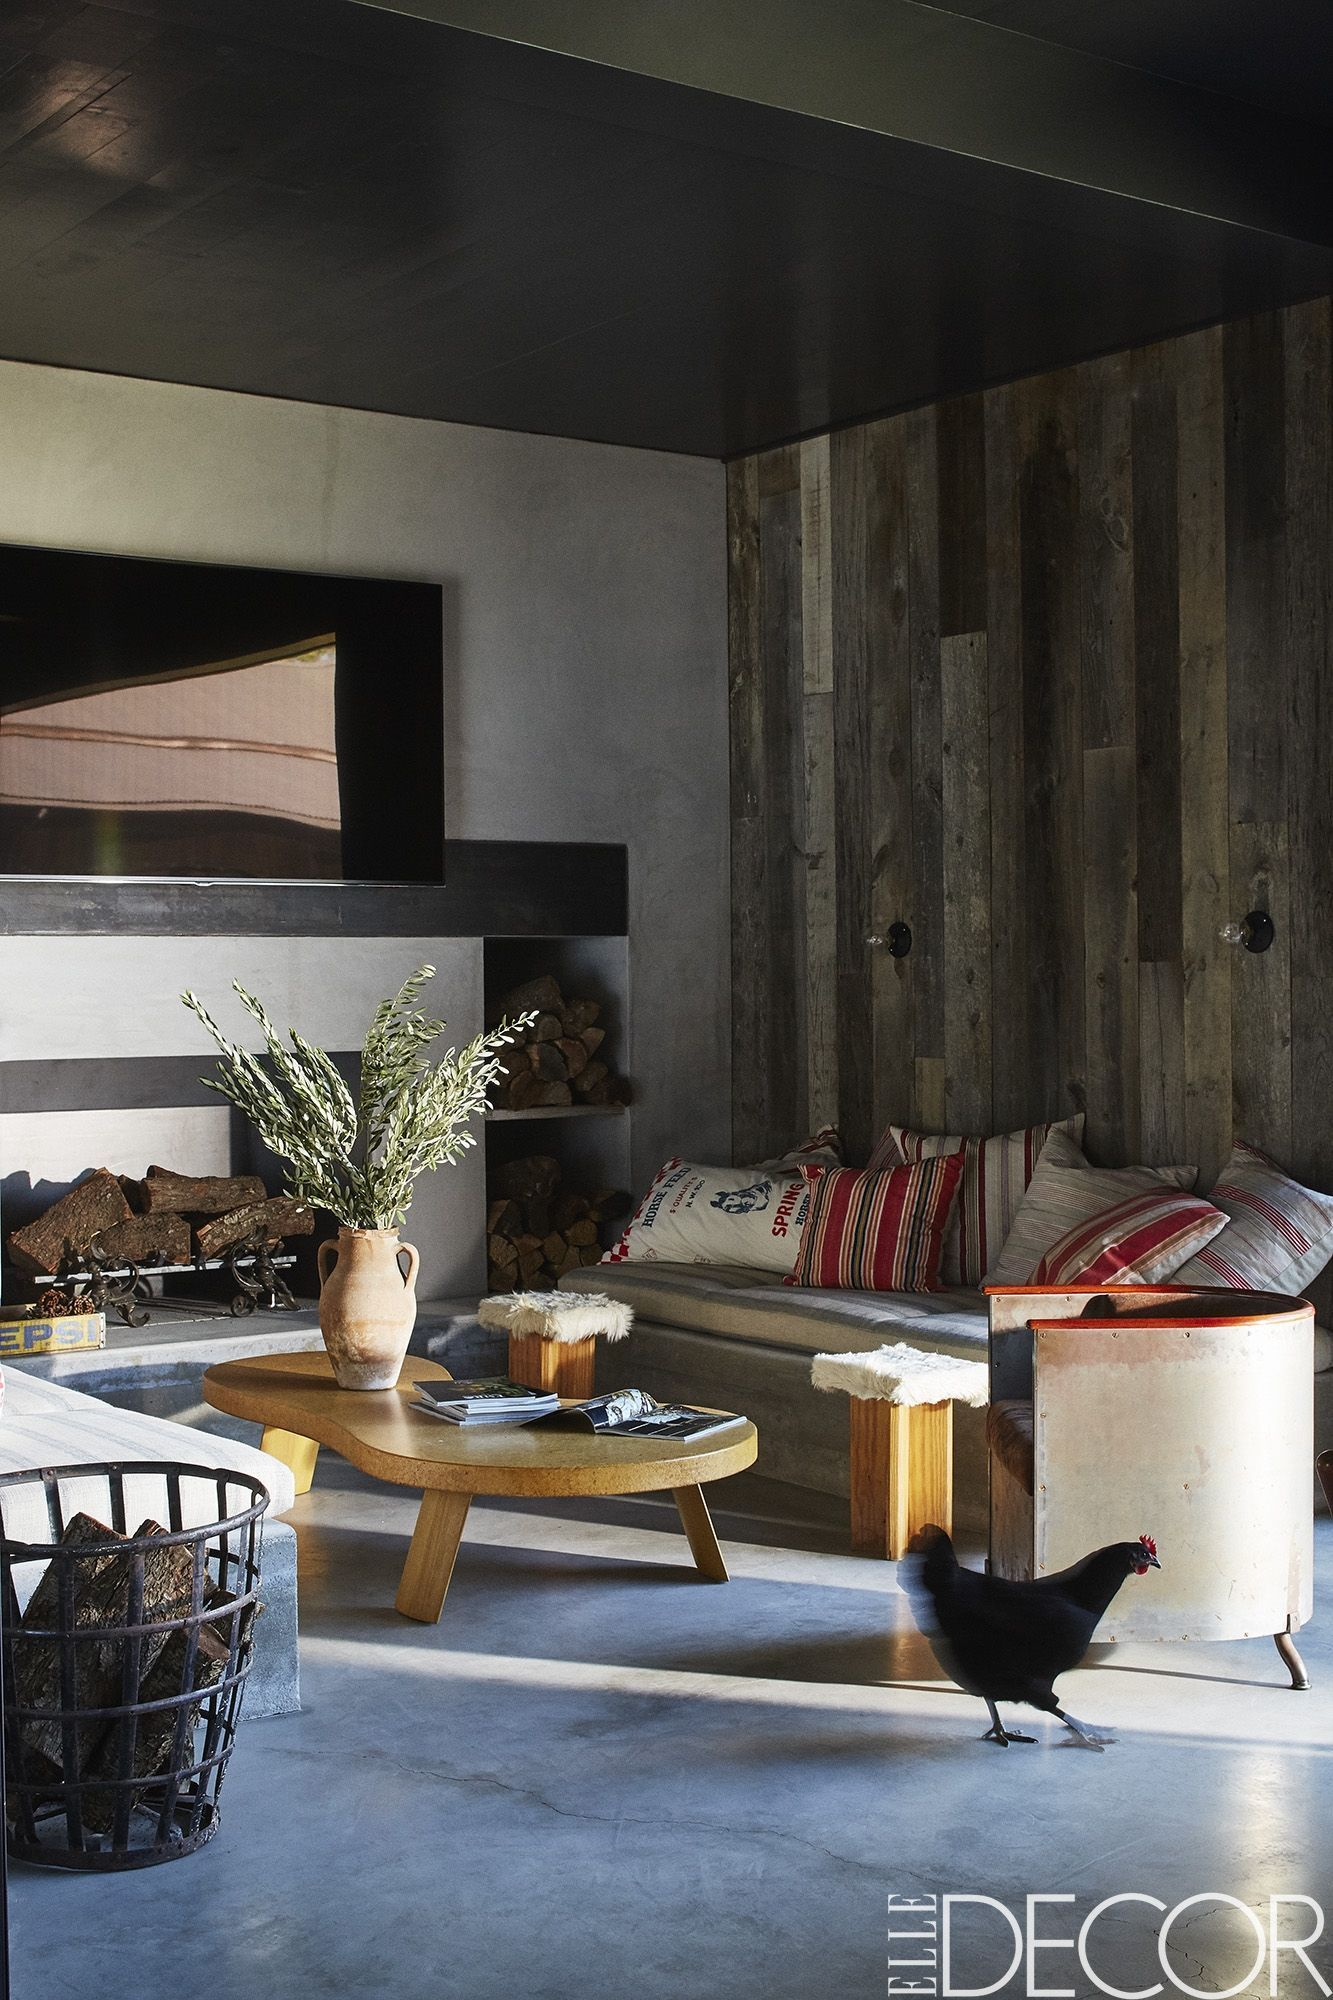 32 Rustic Decor Ideas That Make A Case For Cozy-Chic Interiors